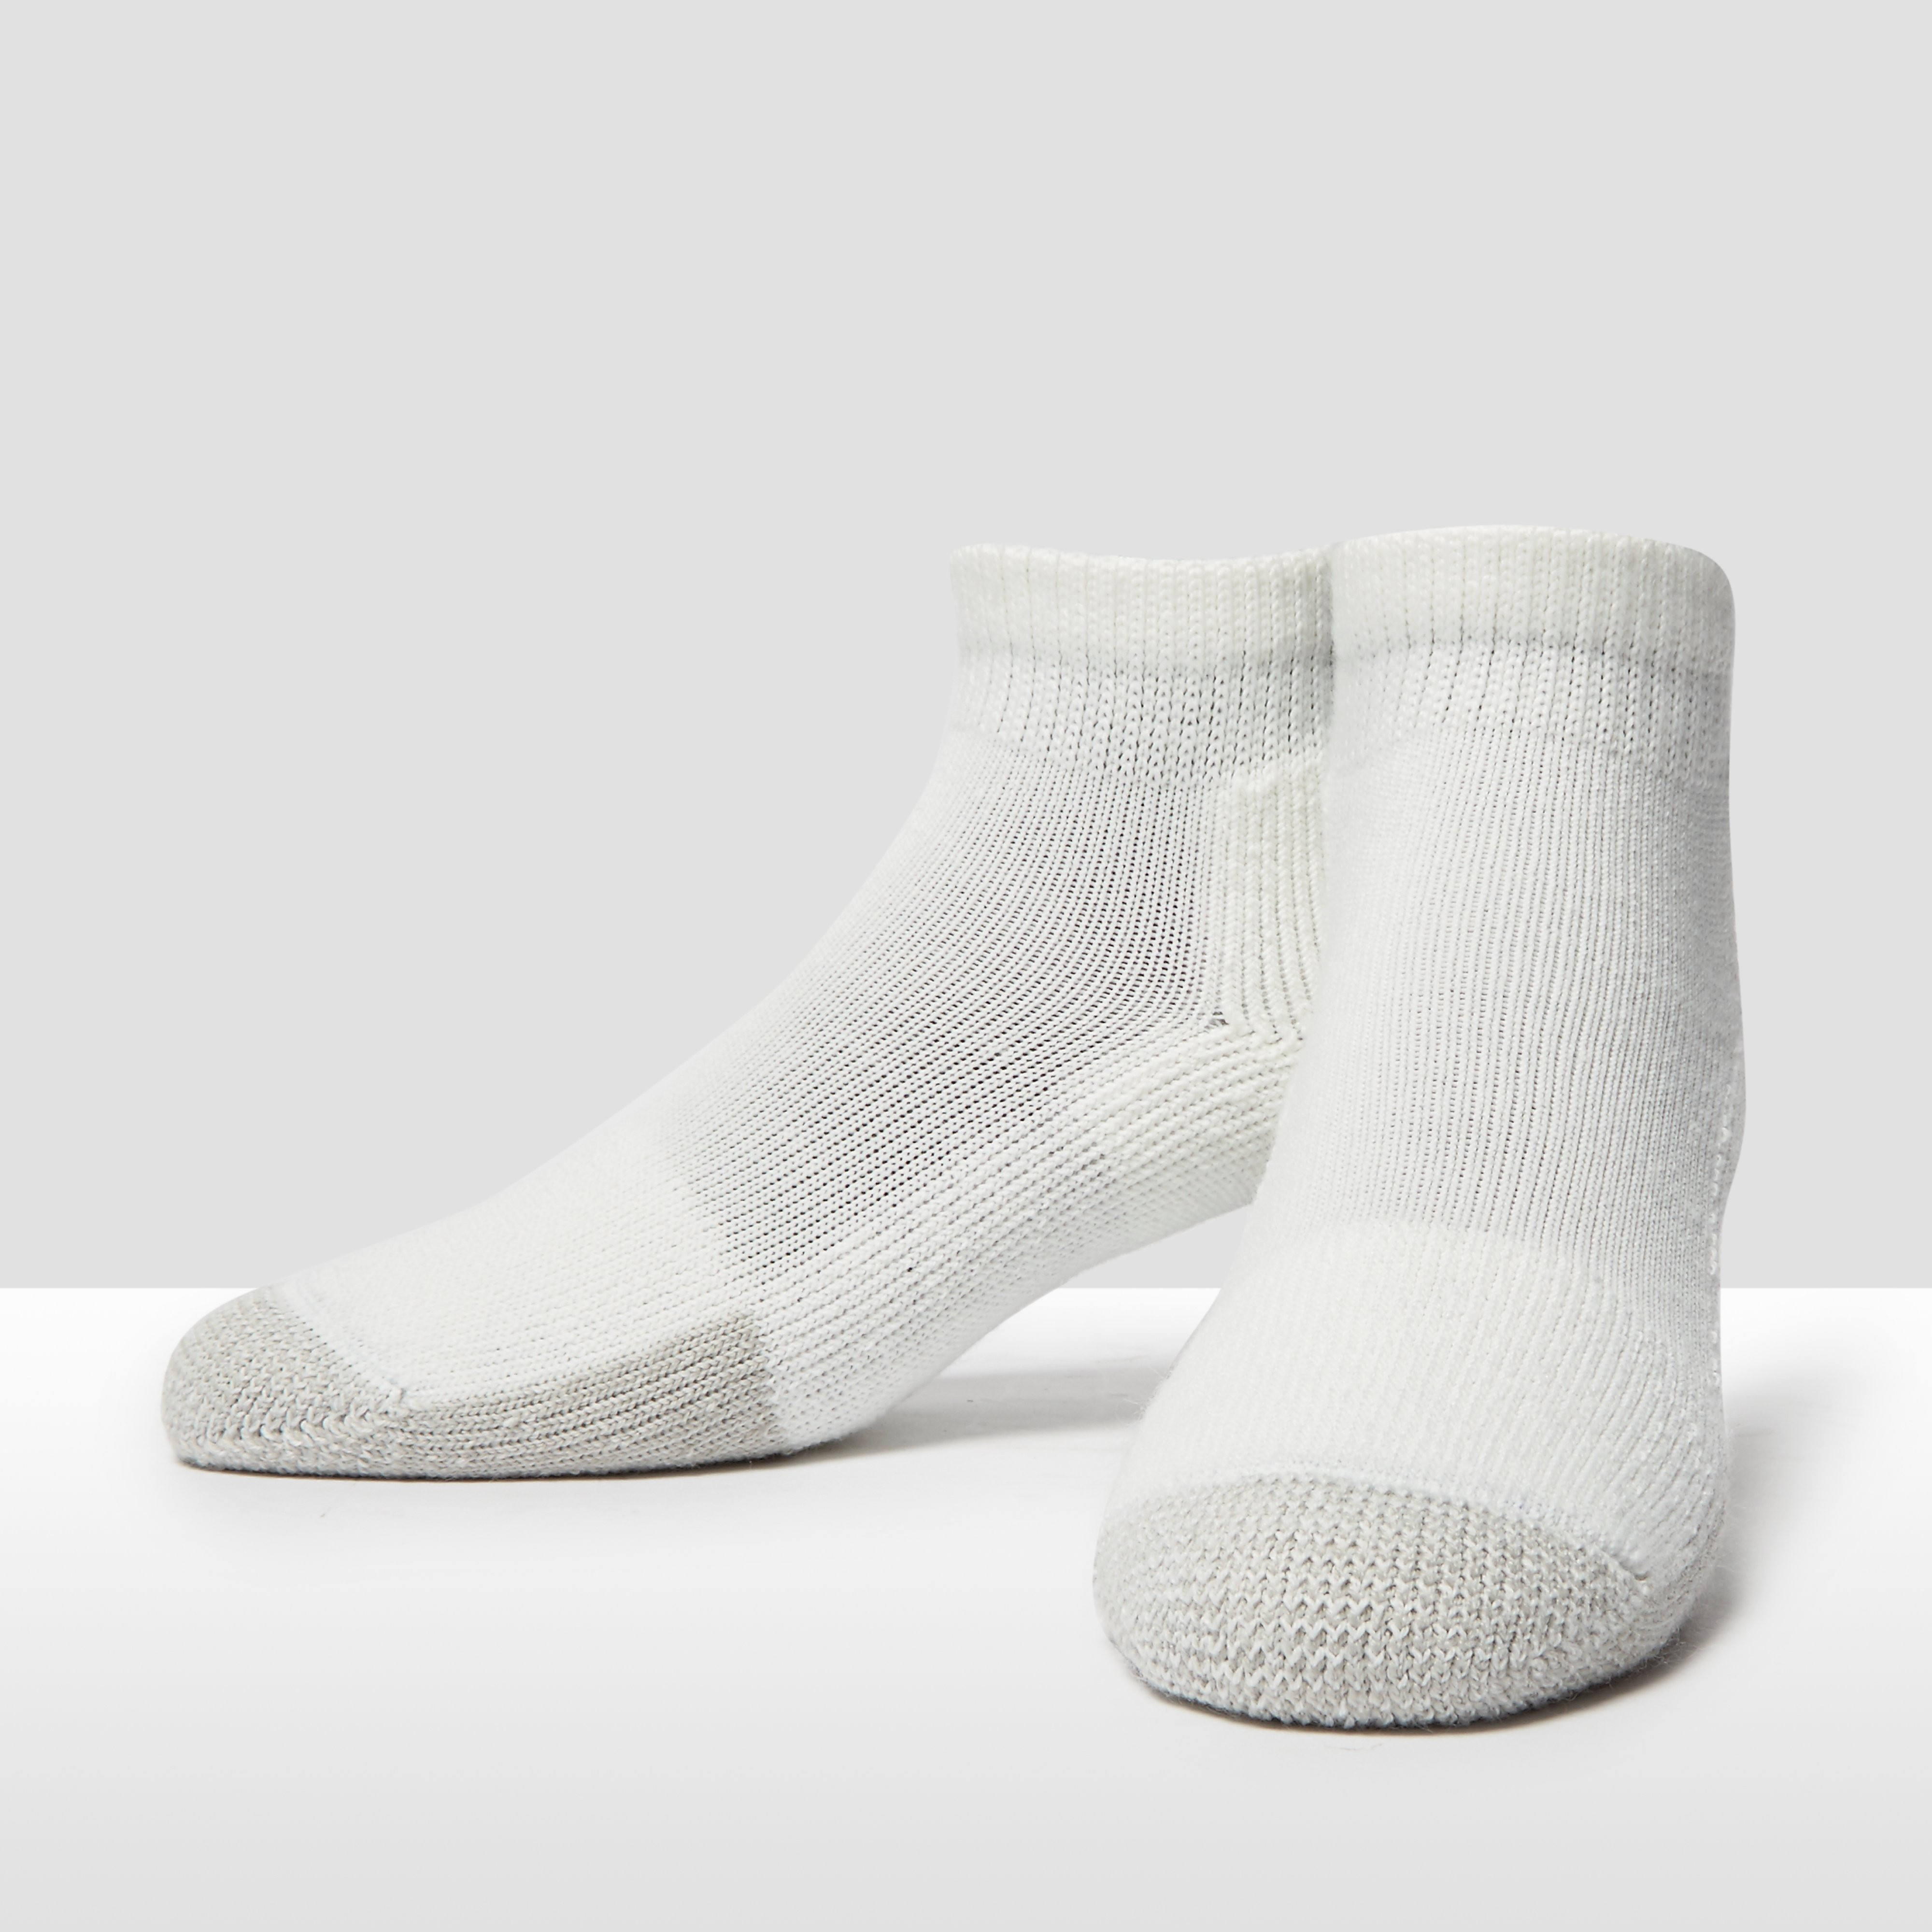 Thorlo 1 Pair TMX Unisex Tennis Socks